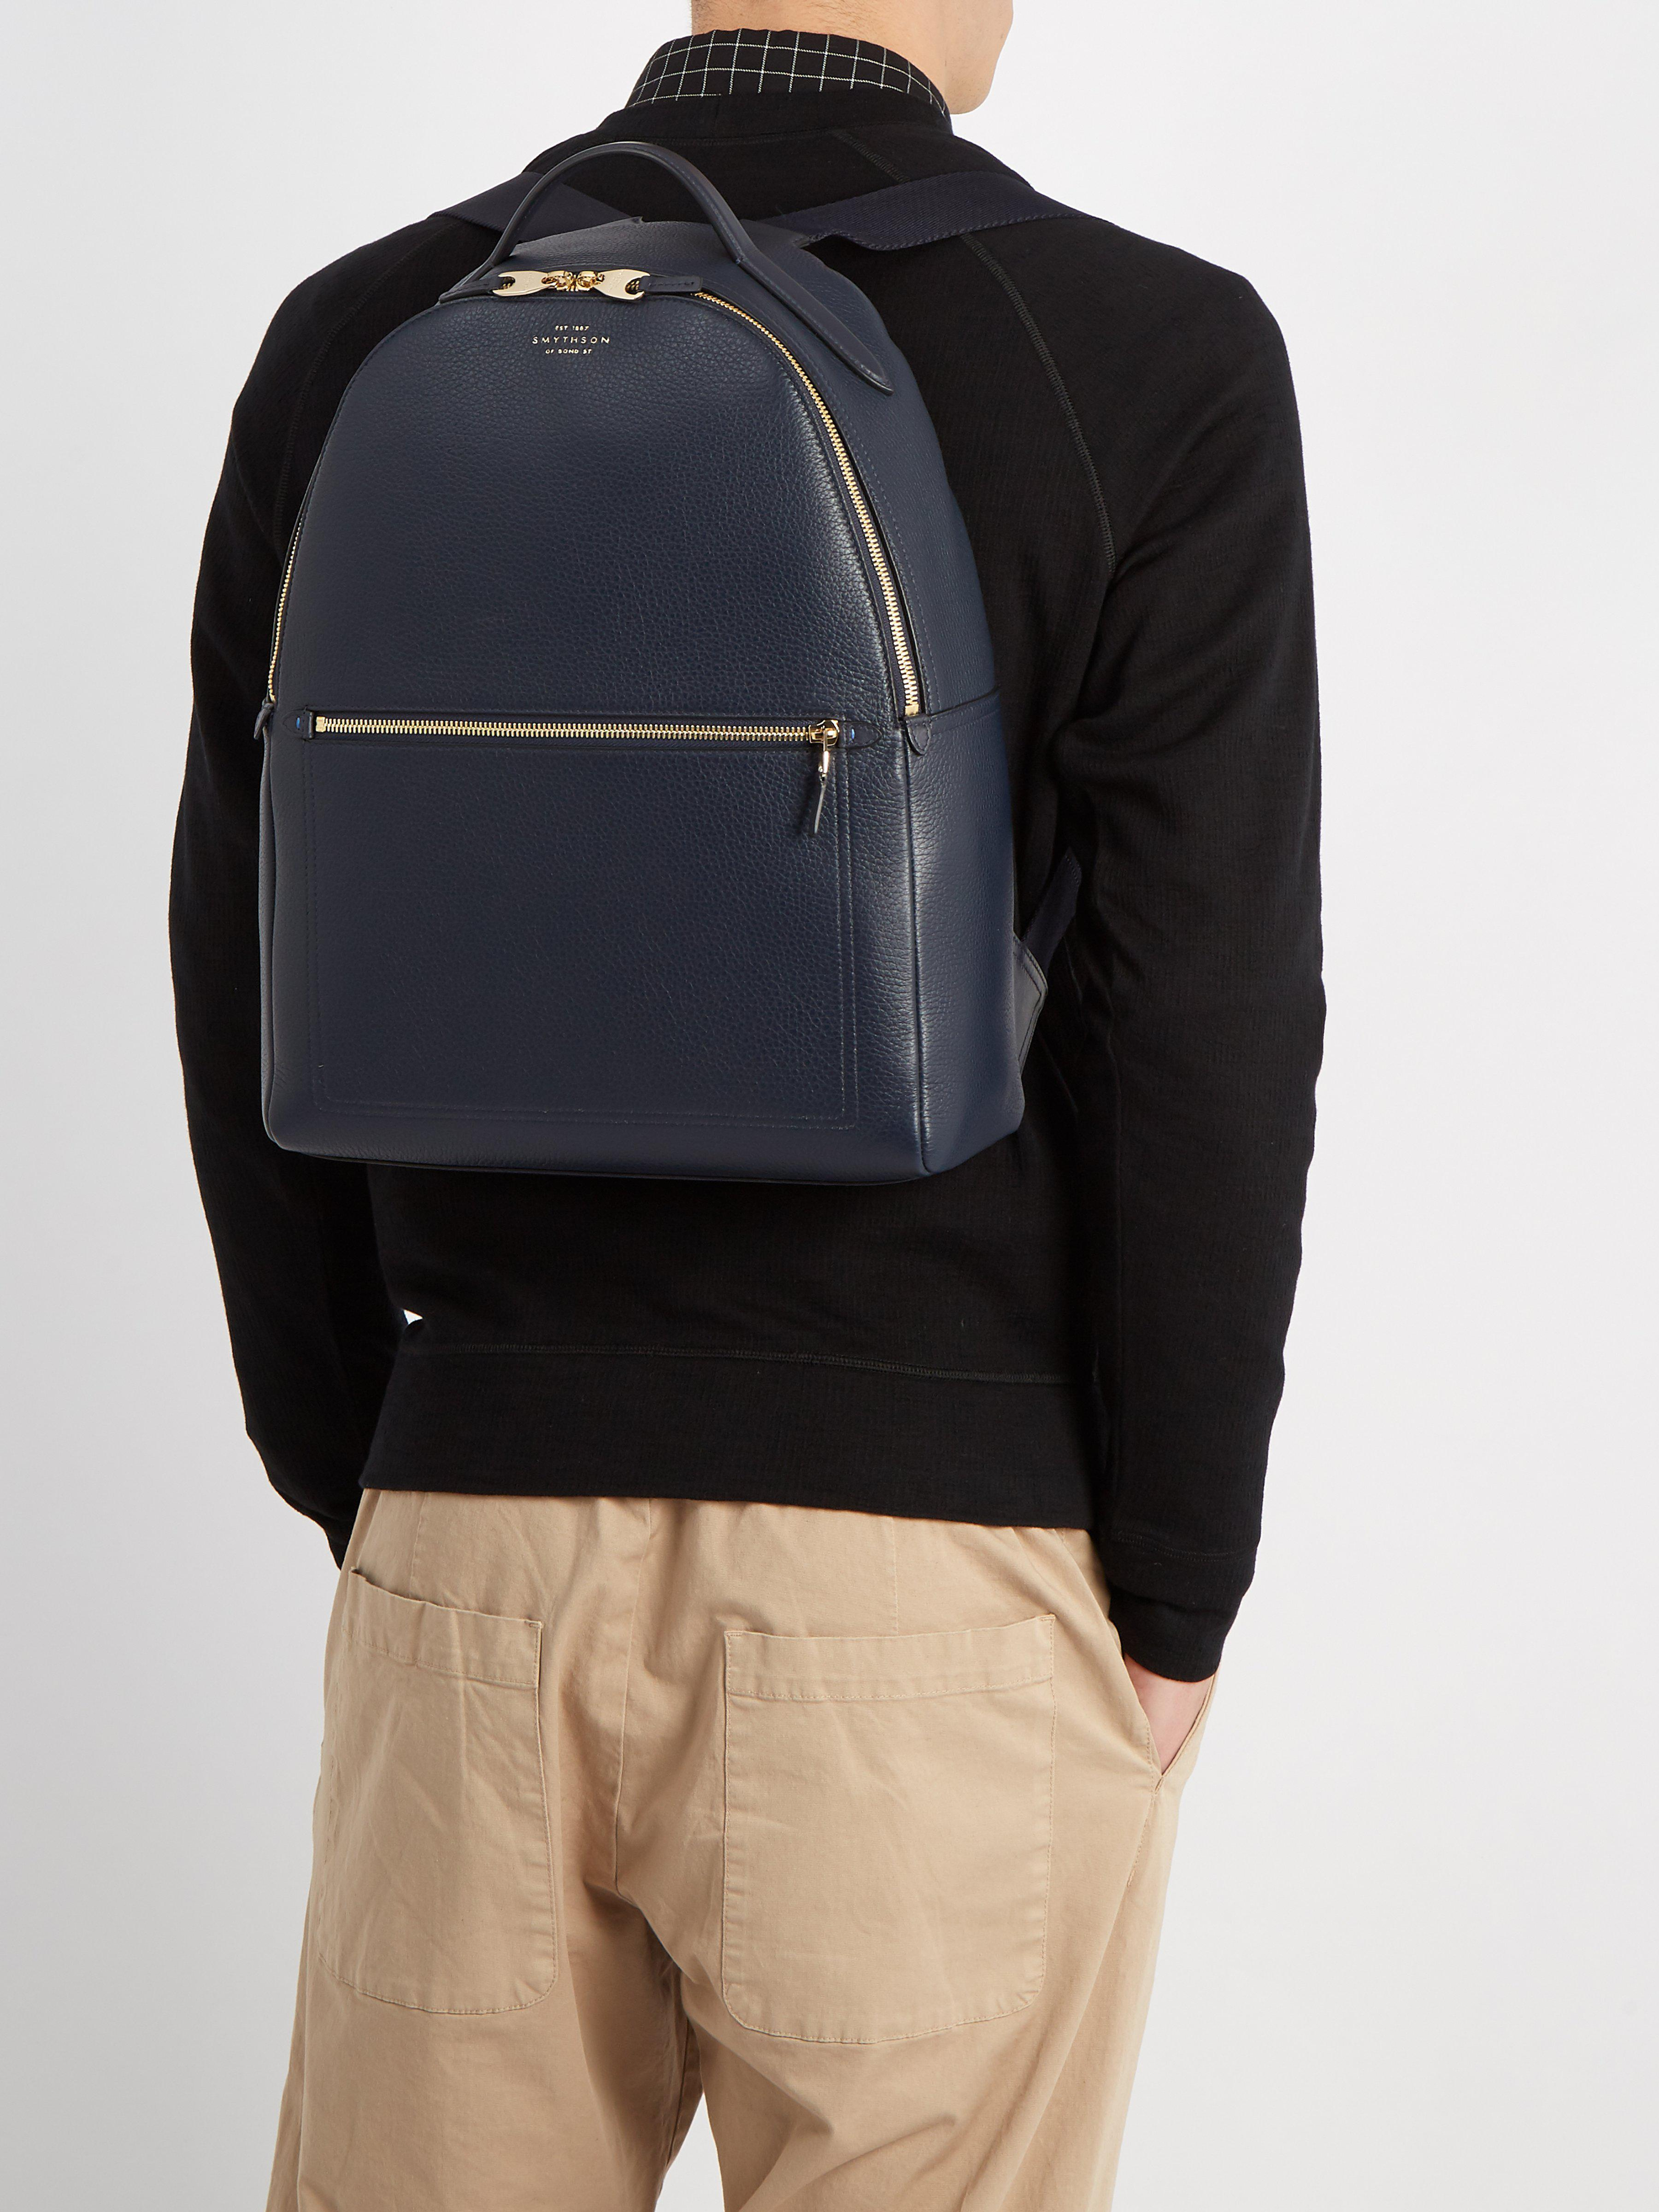 Smythson - Blue Burlington Leather Backpack for Men - Lyst. View fullscreen fb1750e47c